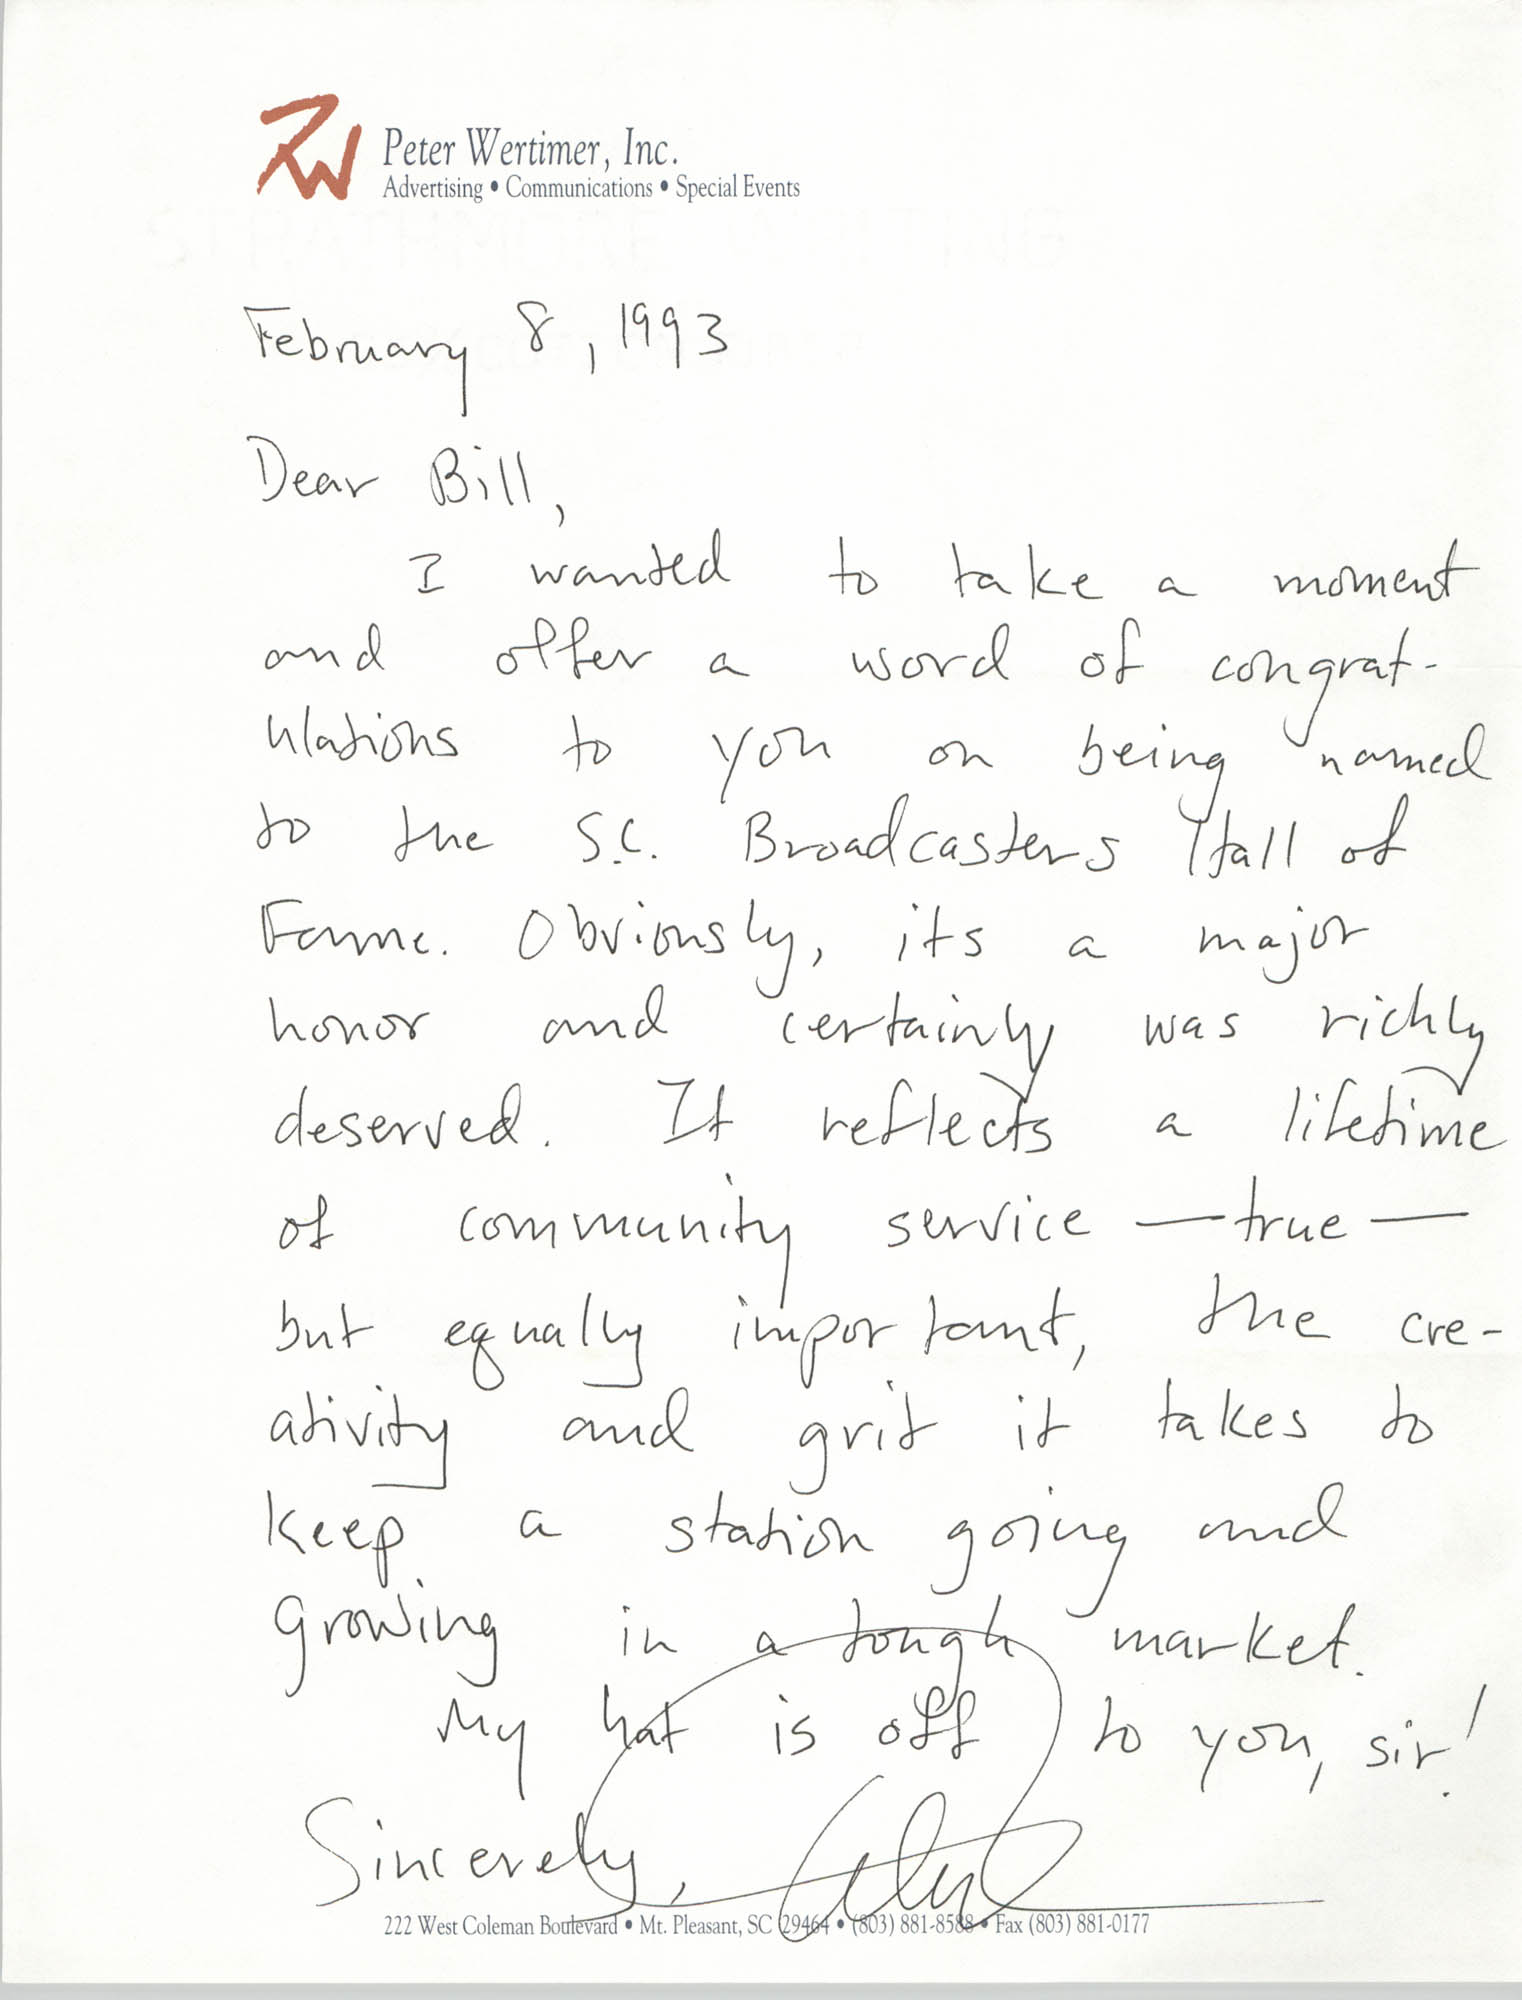 Letter to William Saunders, February 8, 1993